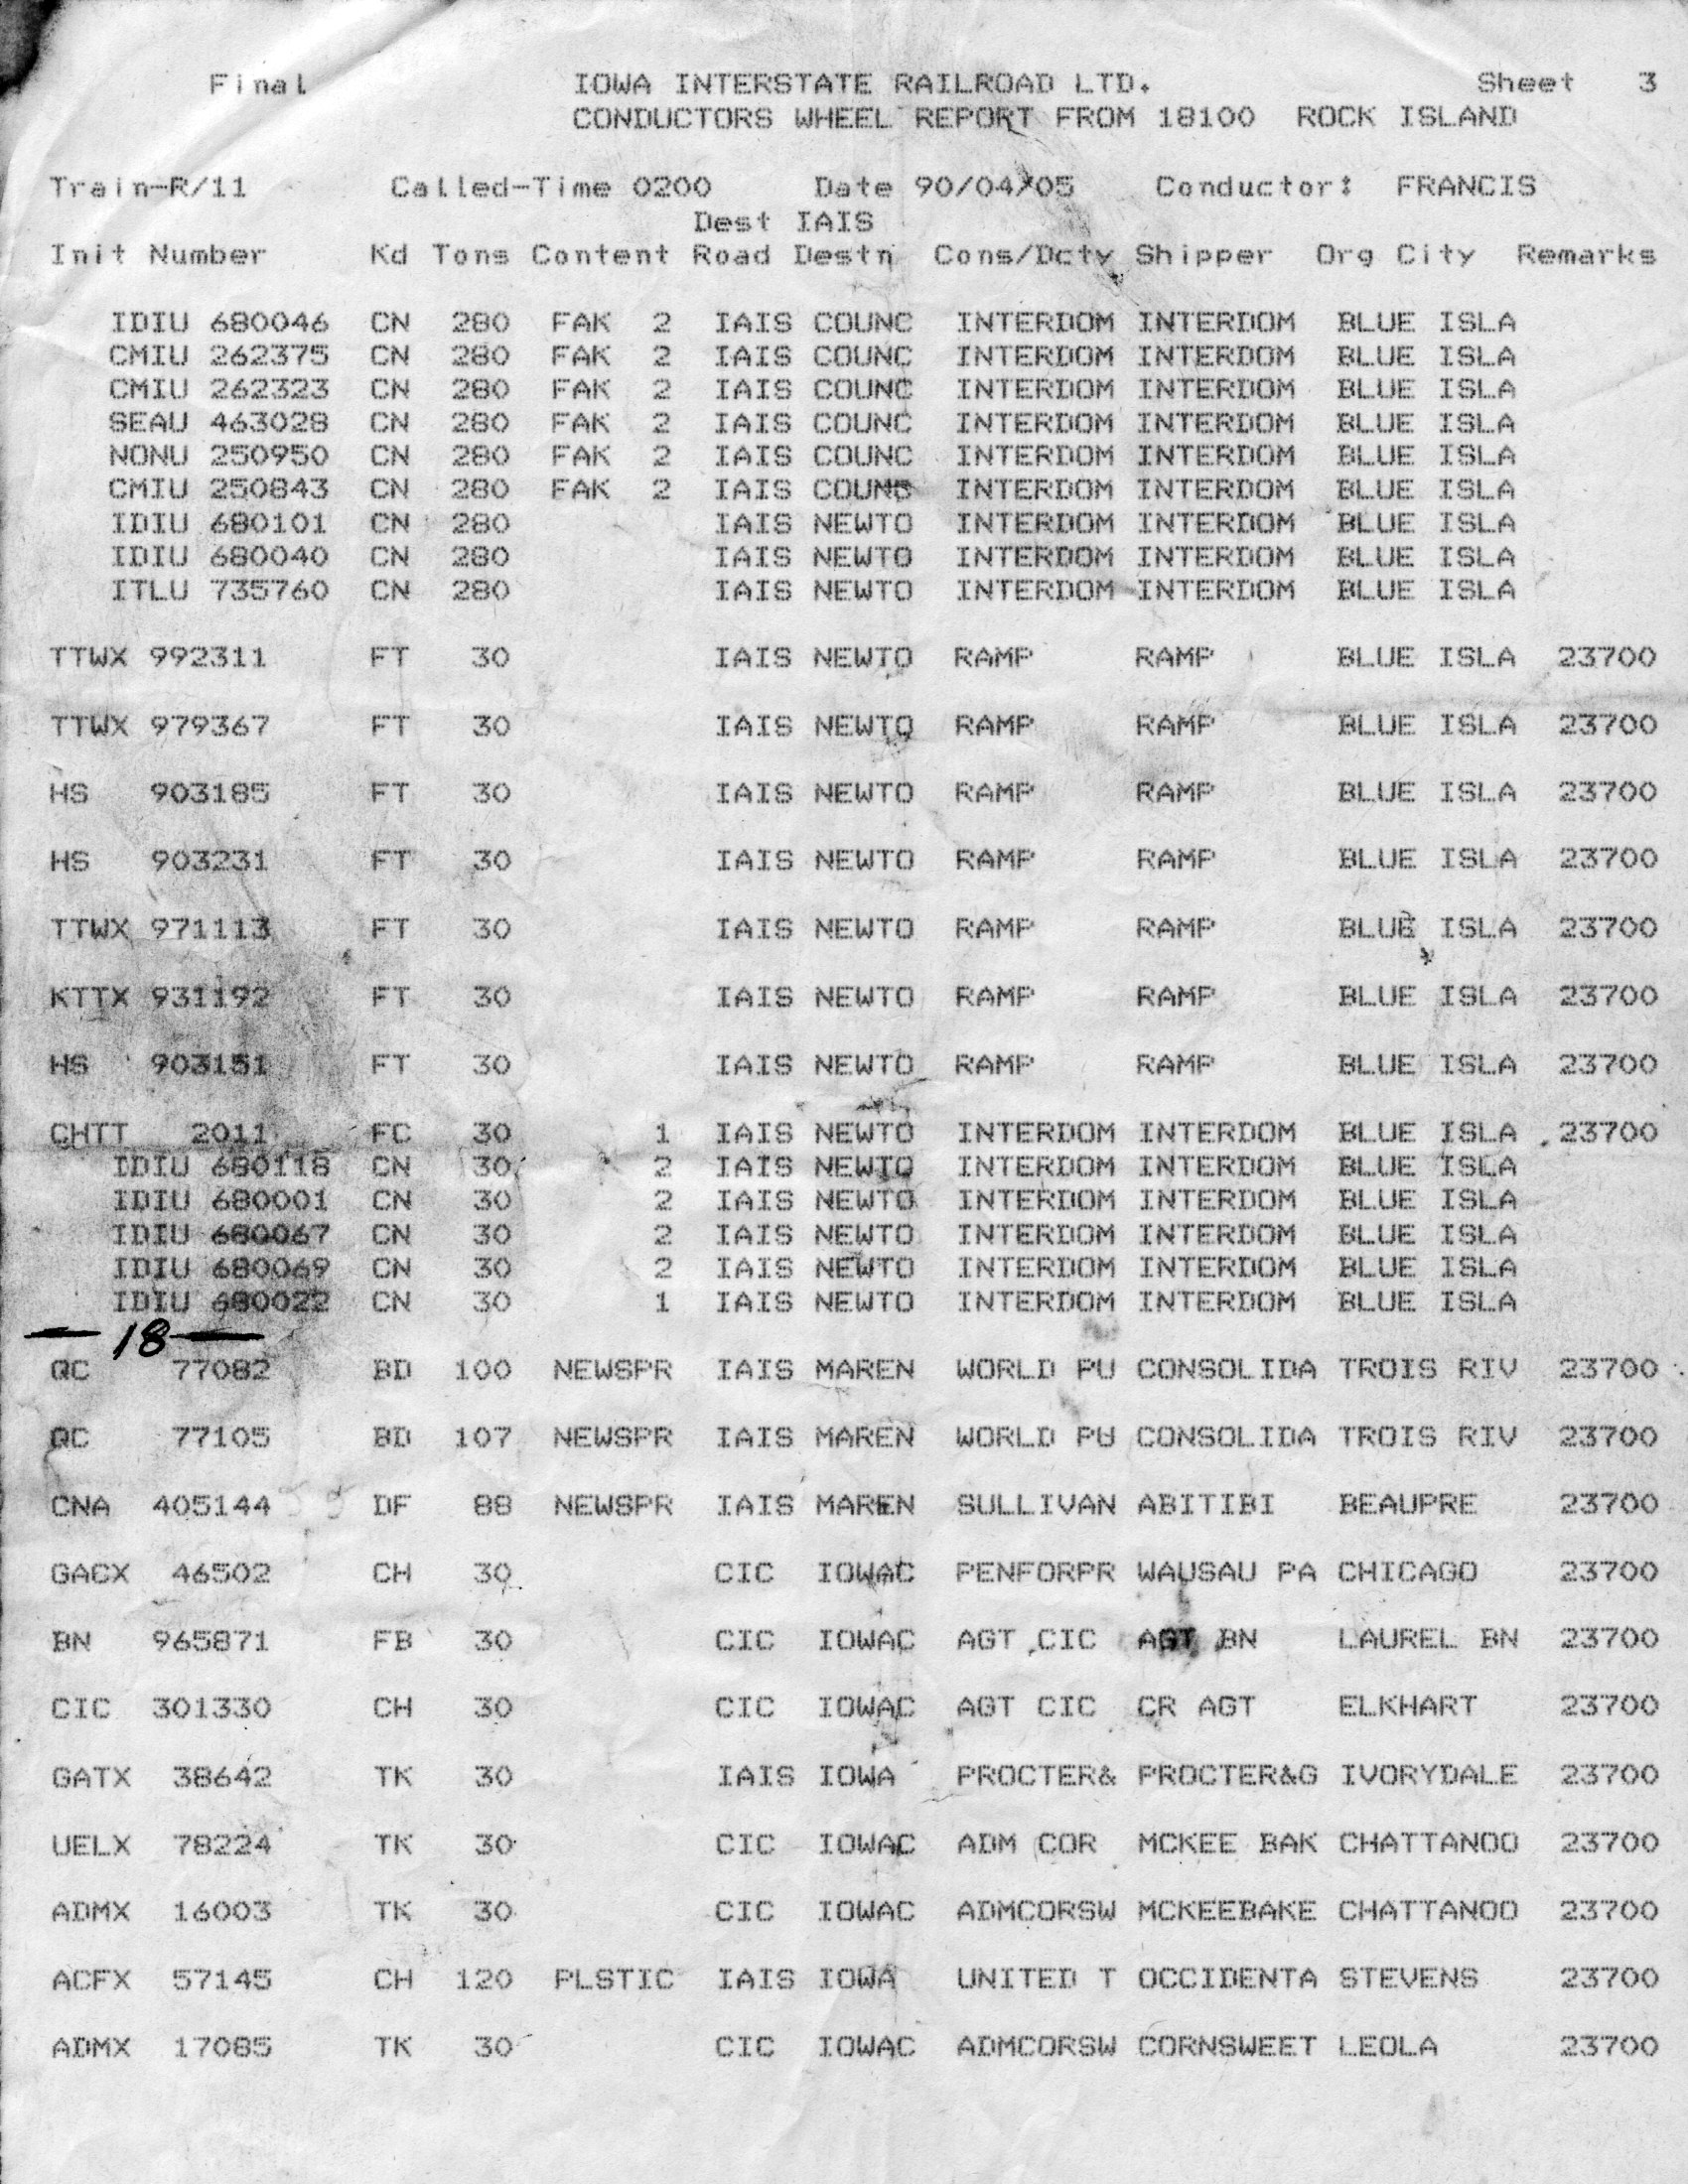 Wheel Report from West Train, 5-Apr-1990, Page 3